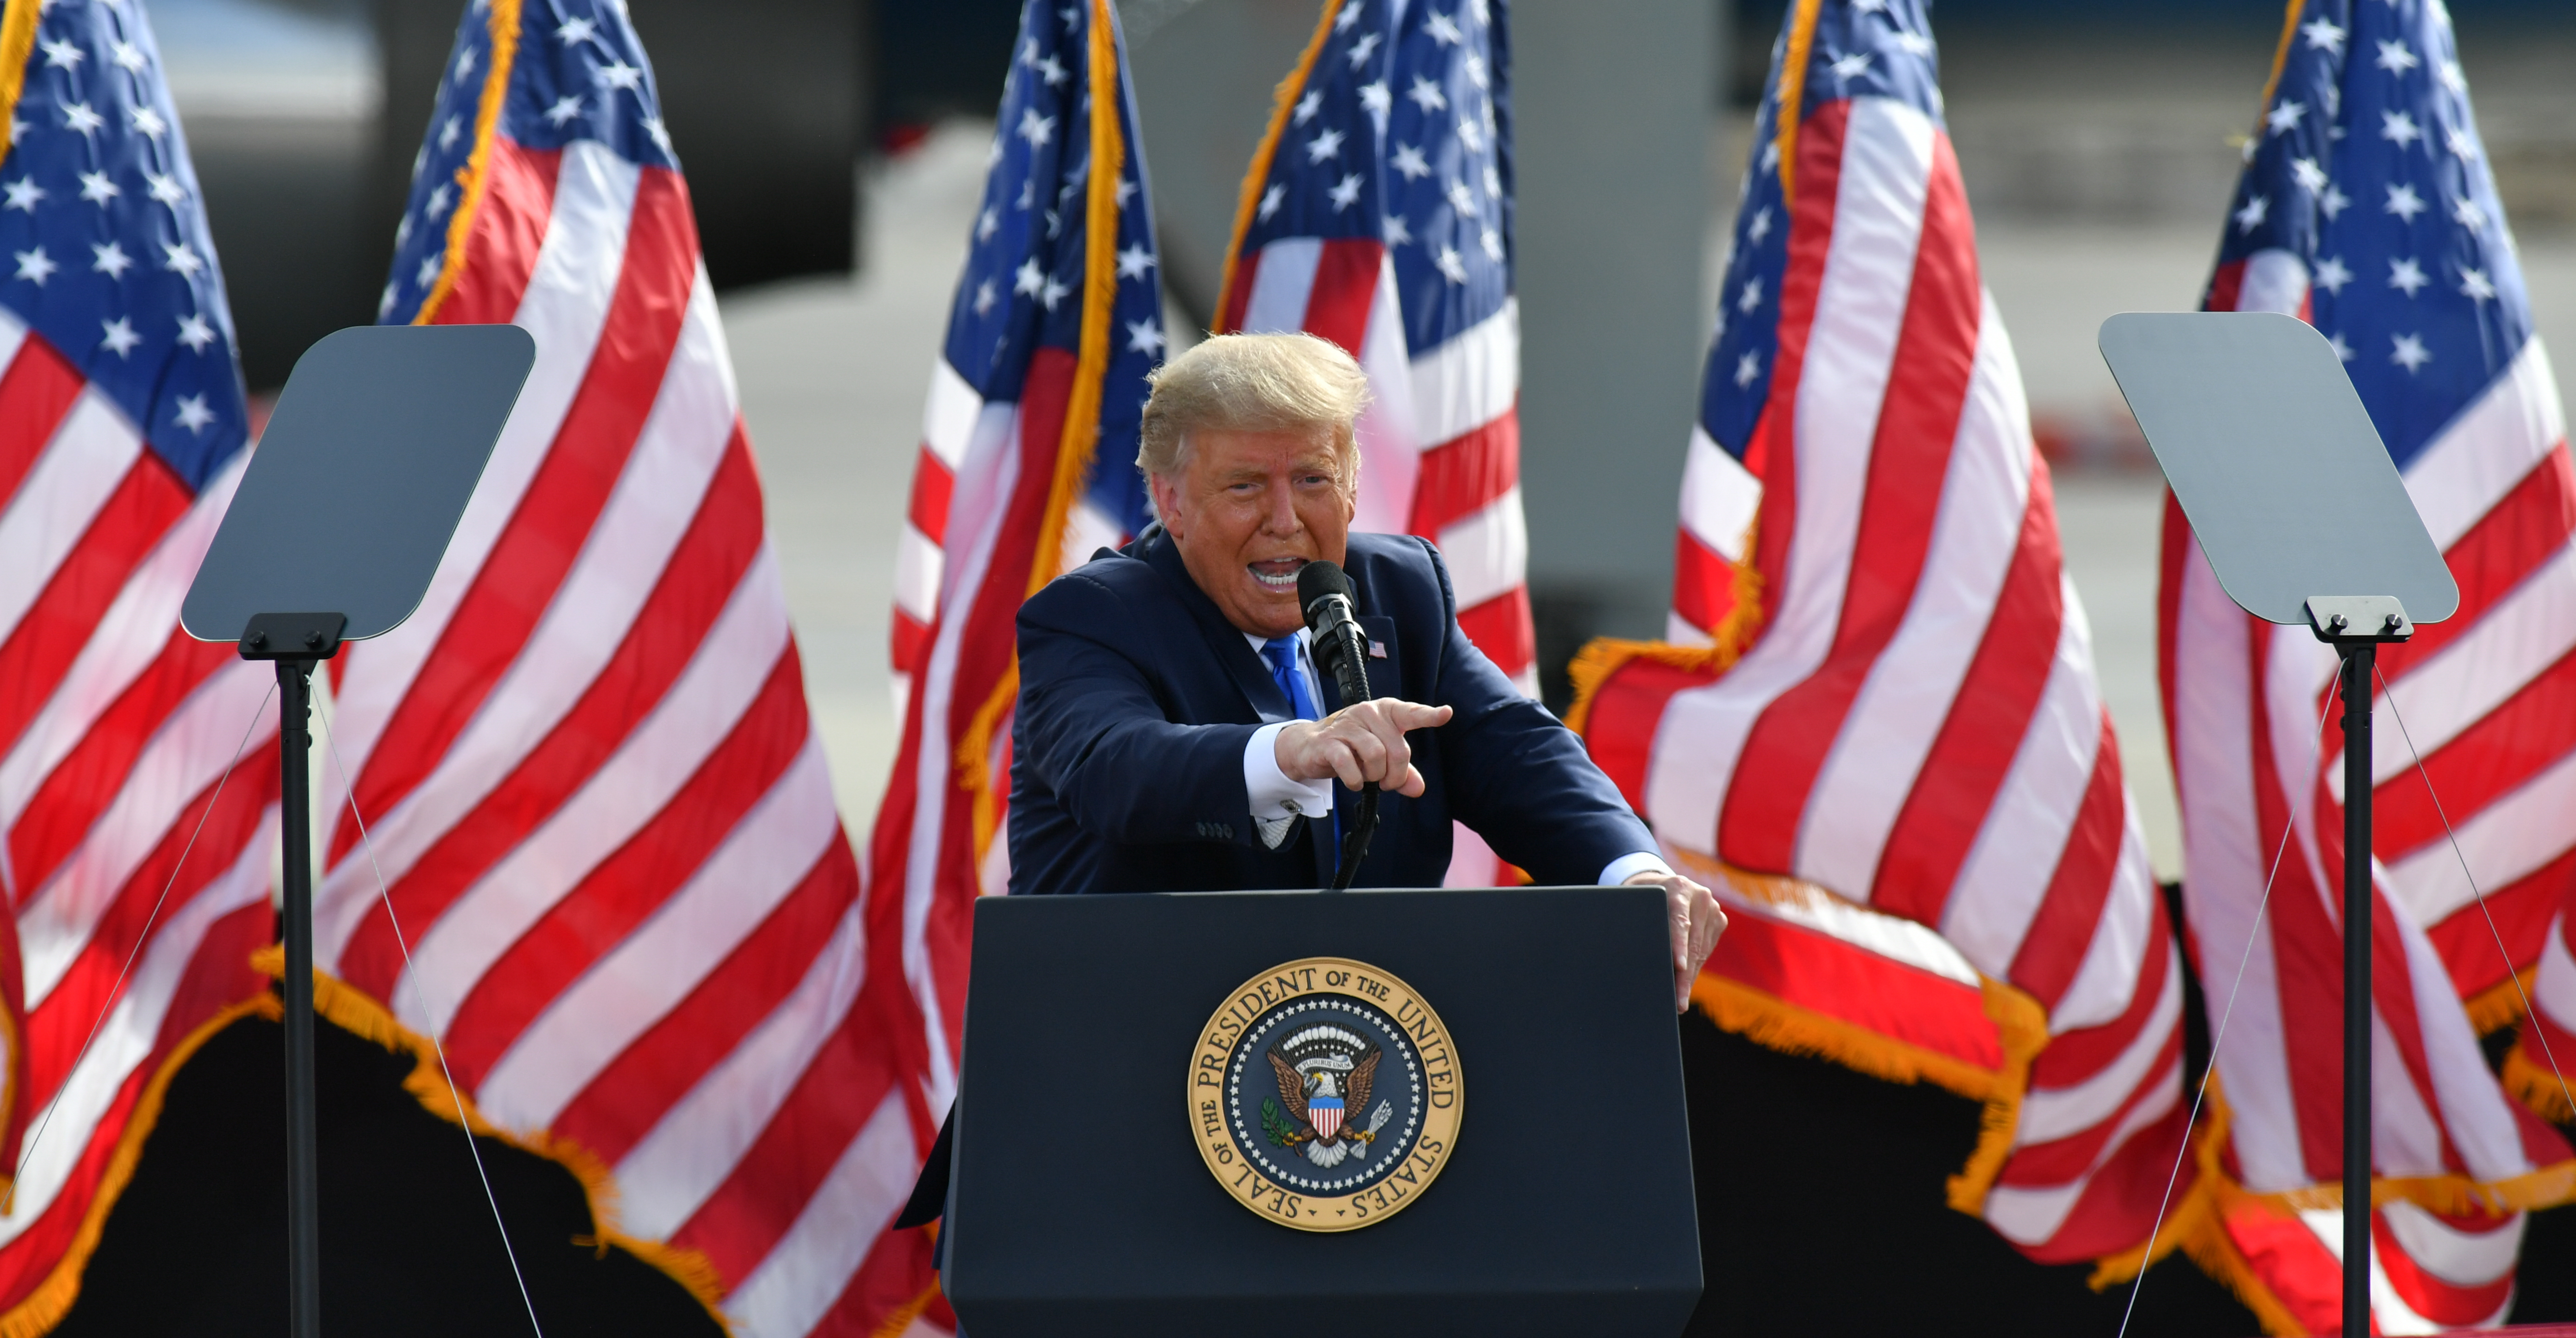 President Trump speaking and pointing from a podium backed by US flags.